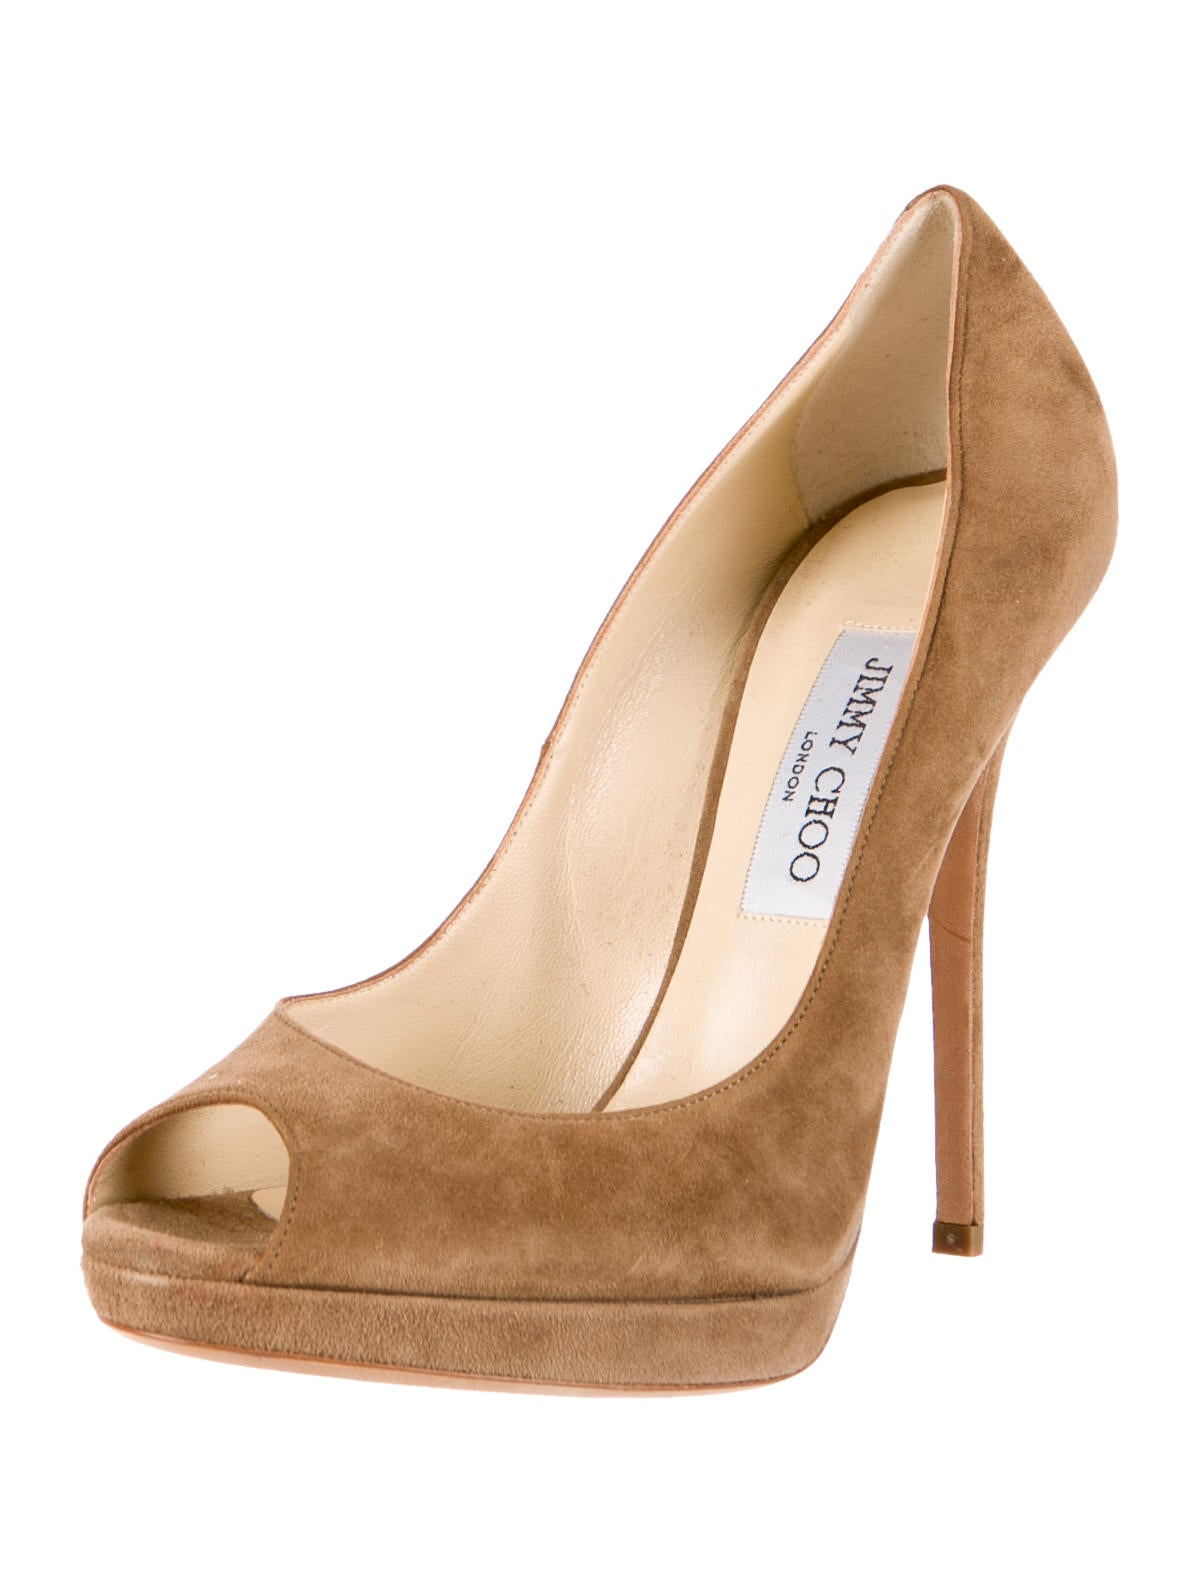 Jimmy choo peep toe pumps shoes jim39249 the realreal - My peep toes ...